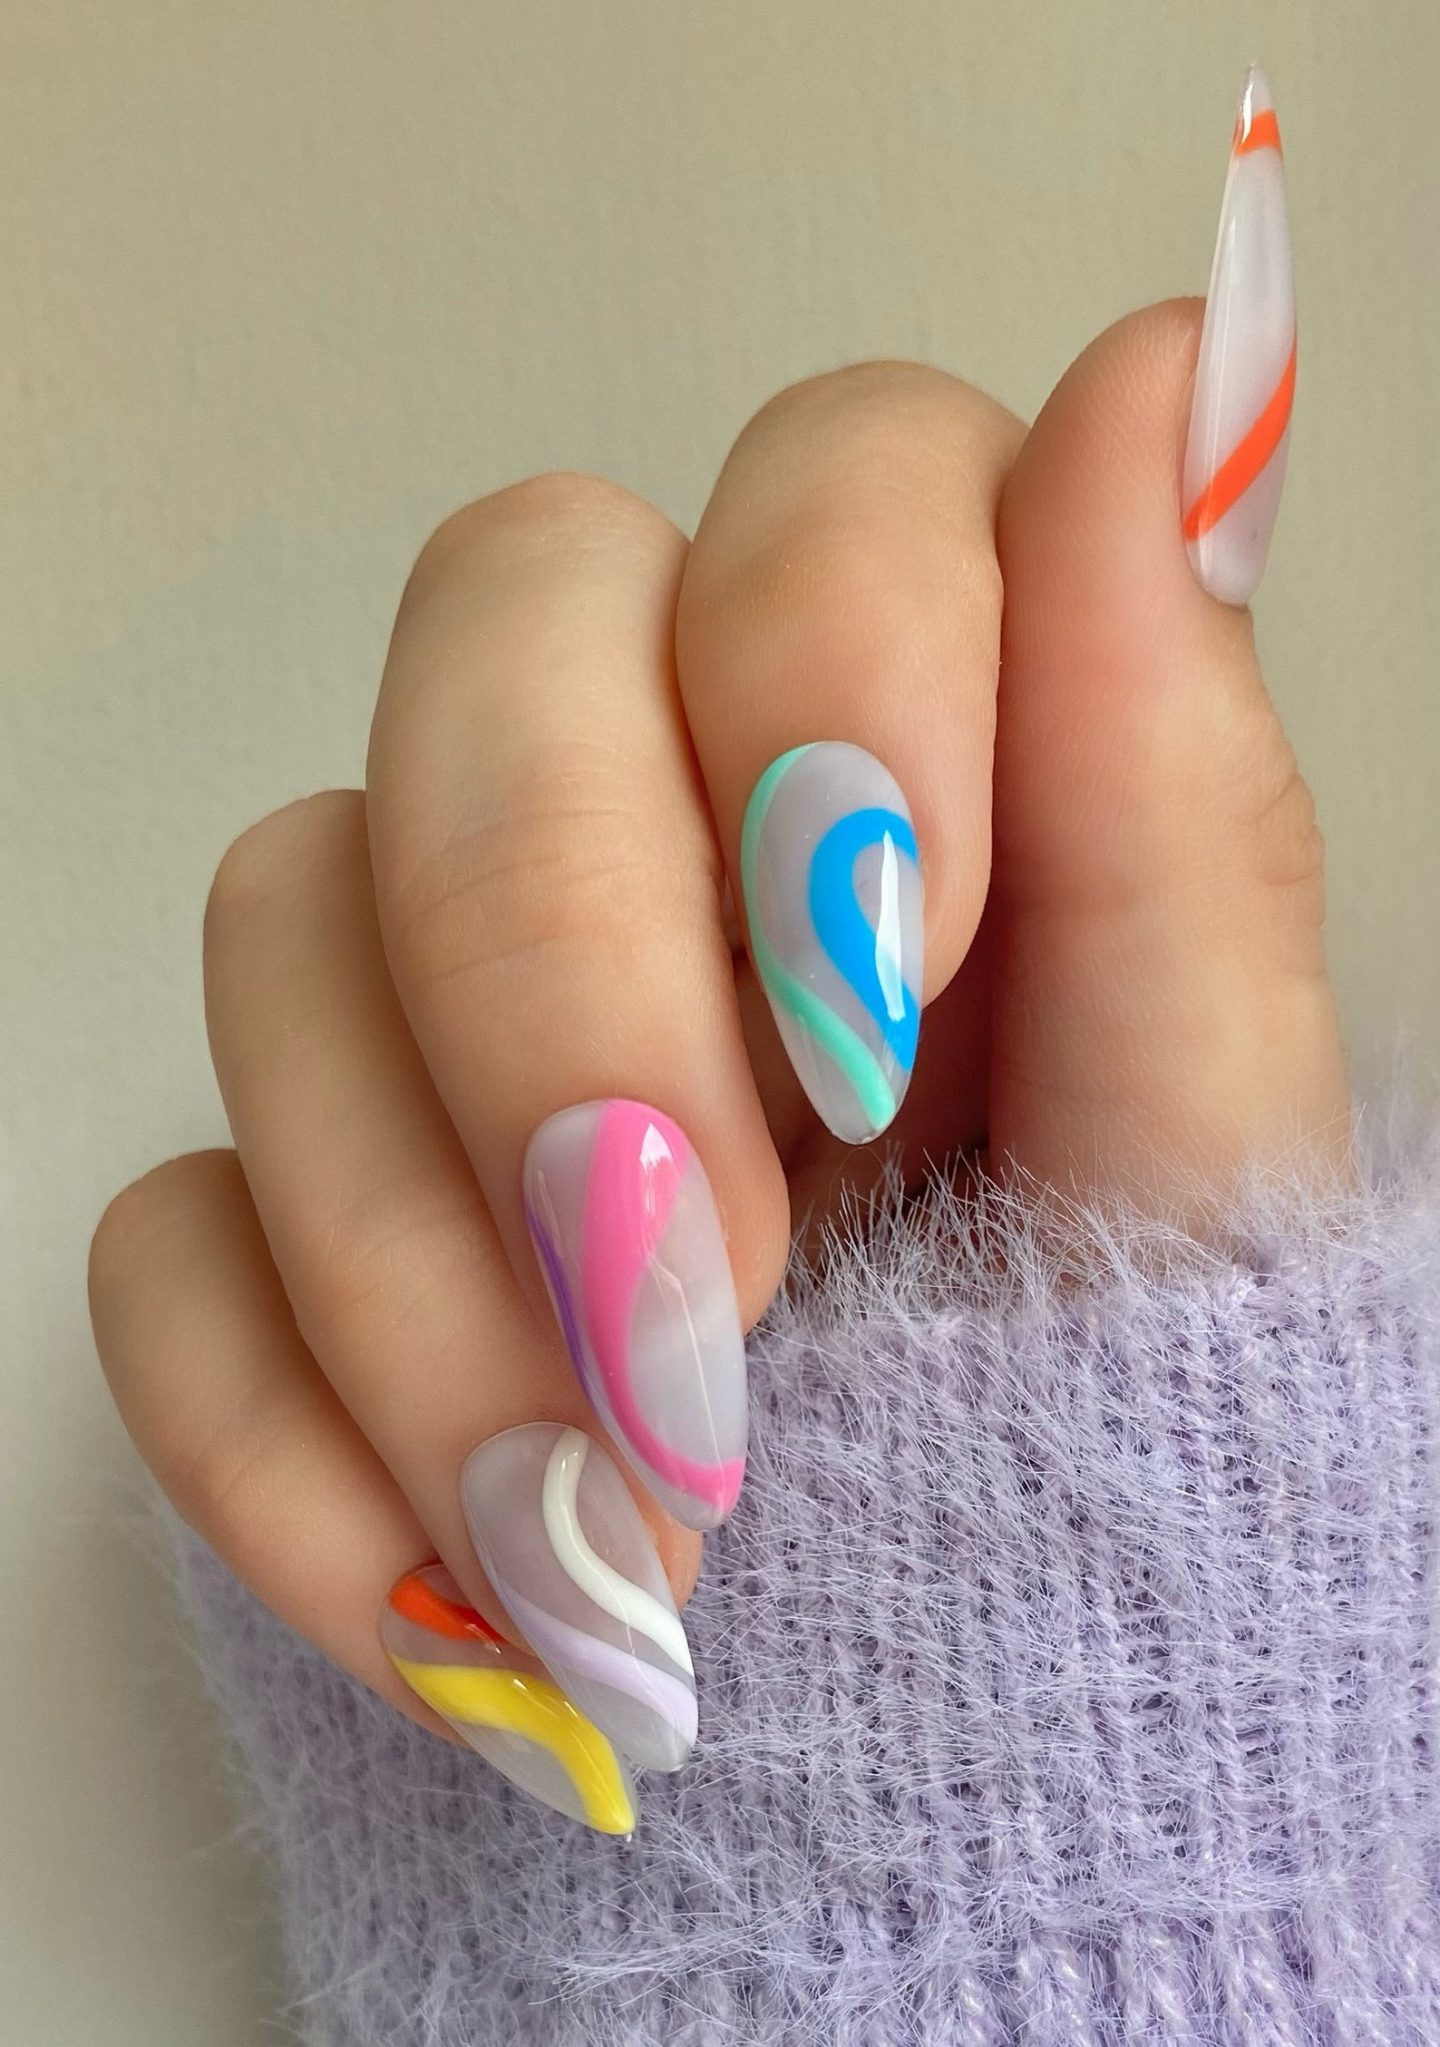 Pastel abstract nails with swirls